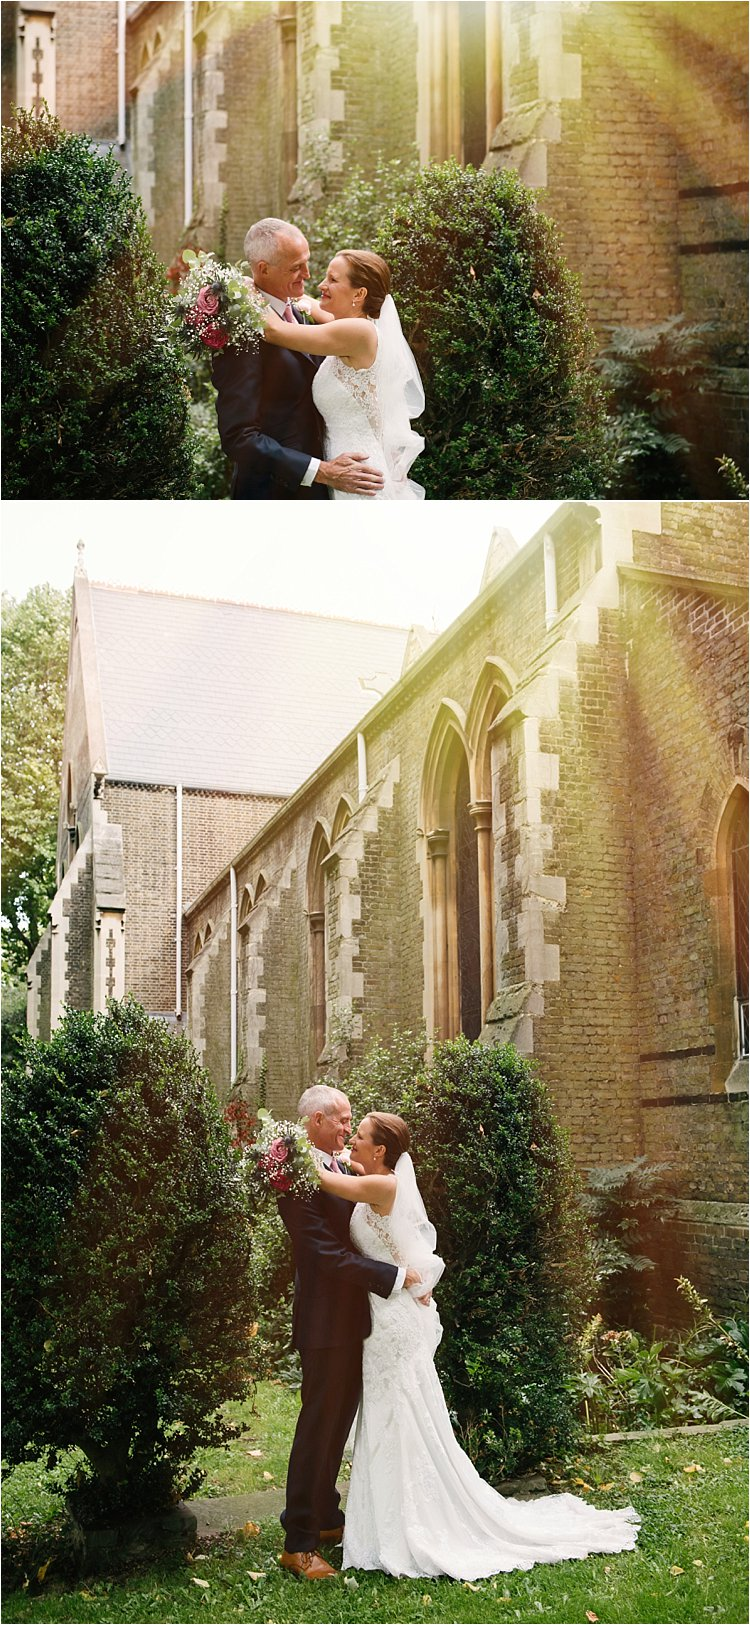 london-dalston-st-barnabas-september-wedding-jo-nigel-lily-sawyer-photo_0000